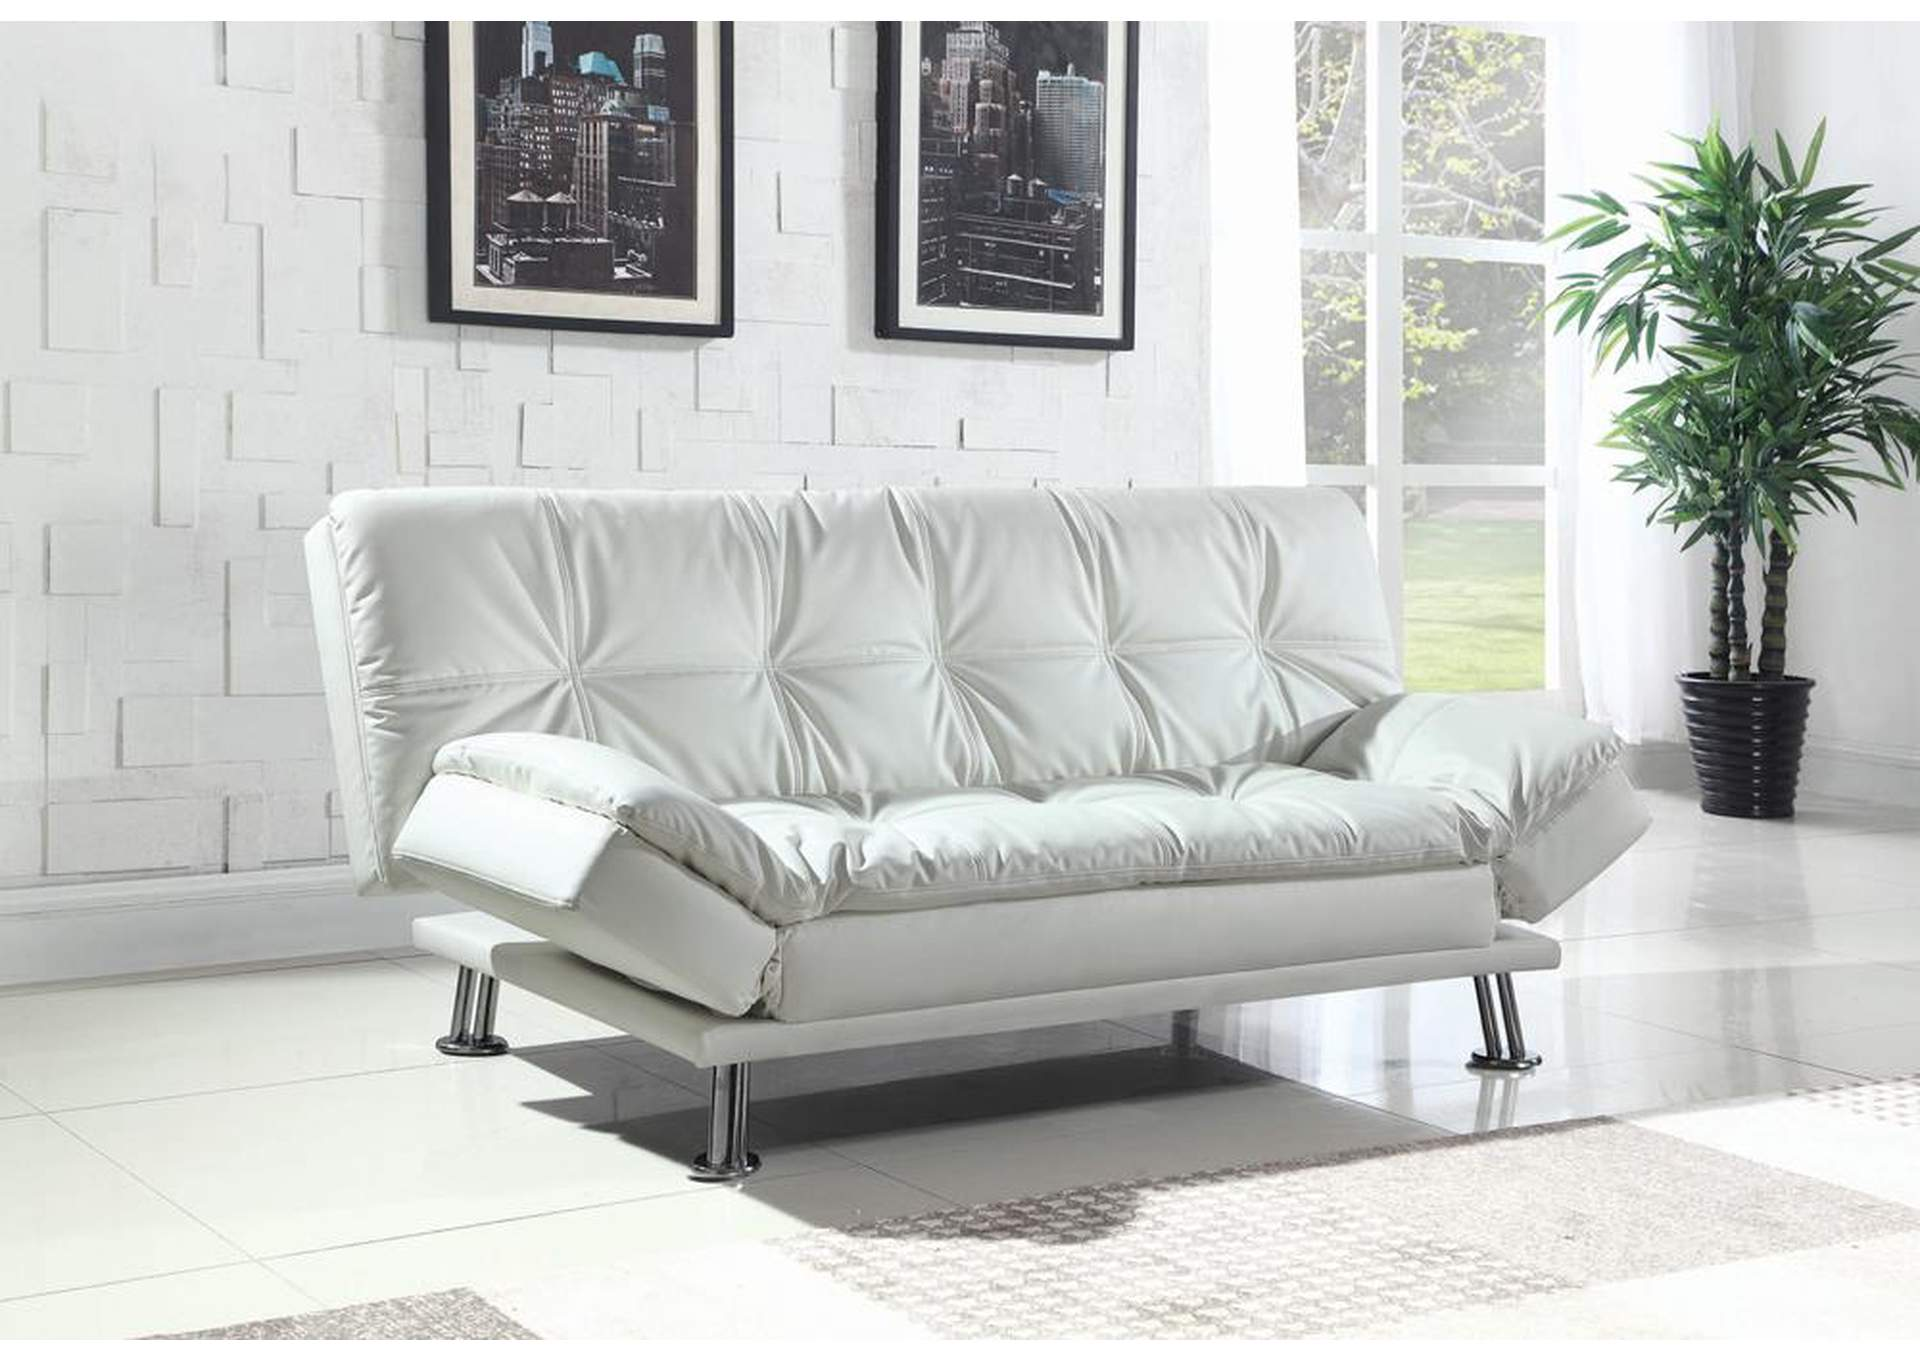 Mr. Discount Furniture - Chicago, IL White Sofa Bed & Ottoman